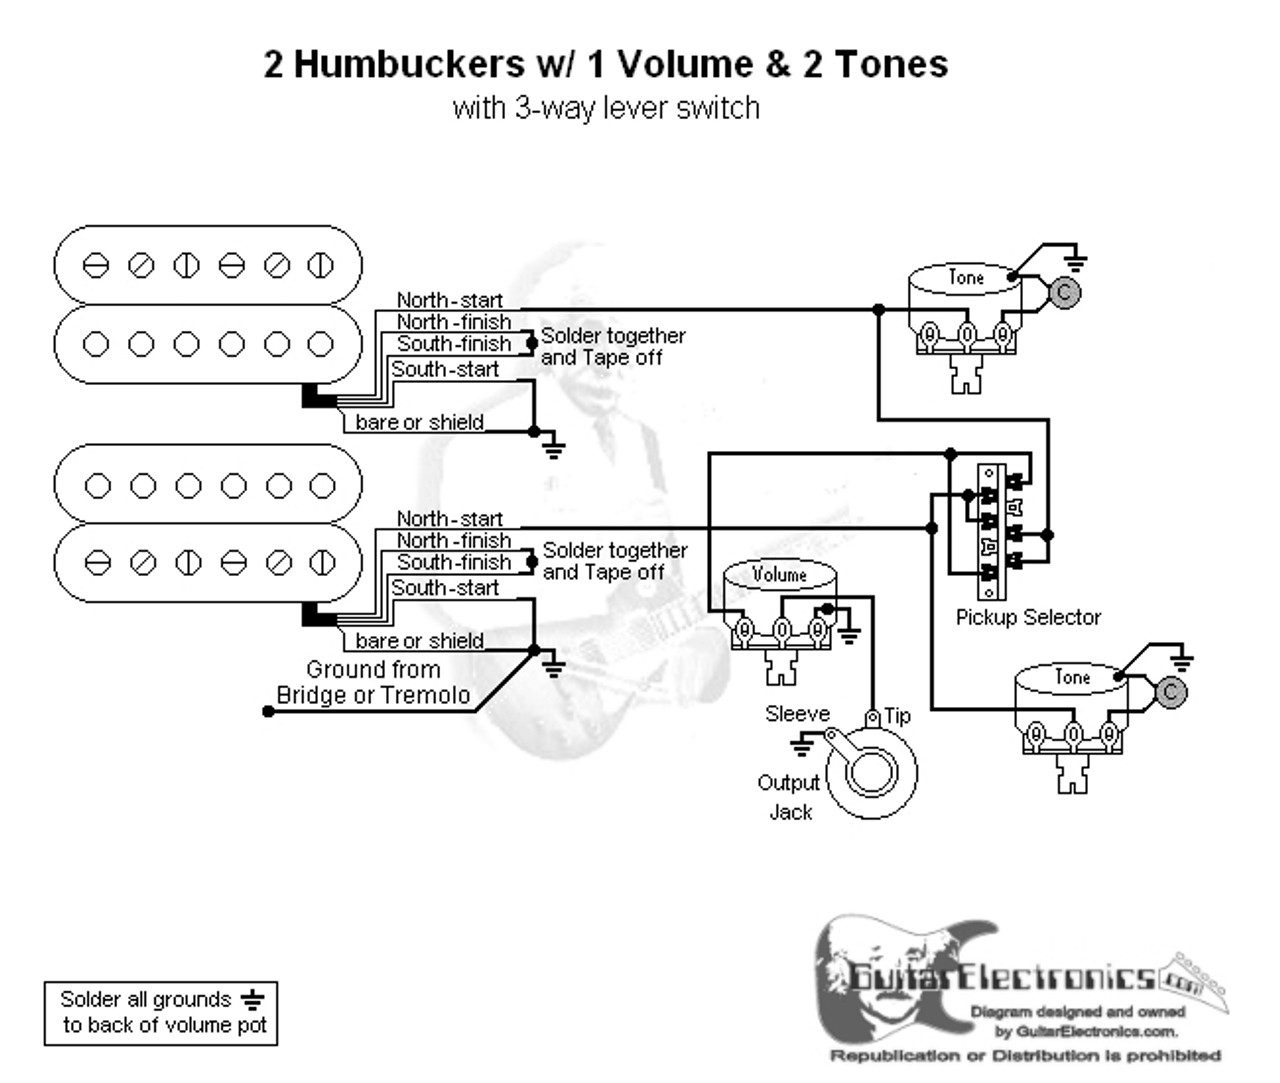 hight resolution of strat wiring diagram 1 volume 2 tones wiring diagram paper2 humbuckers 3 way lever switch 1 volume 2 tones bass wiring diagram 1 volume 2 tone strat wiring